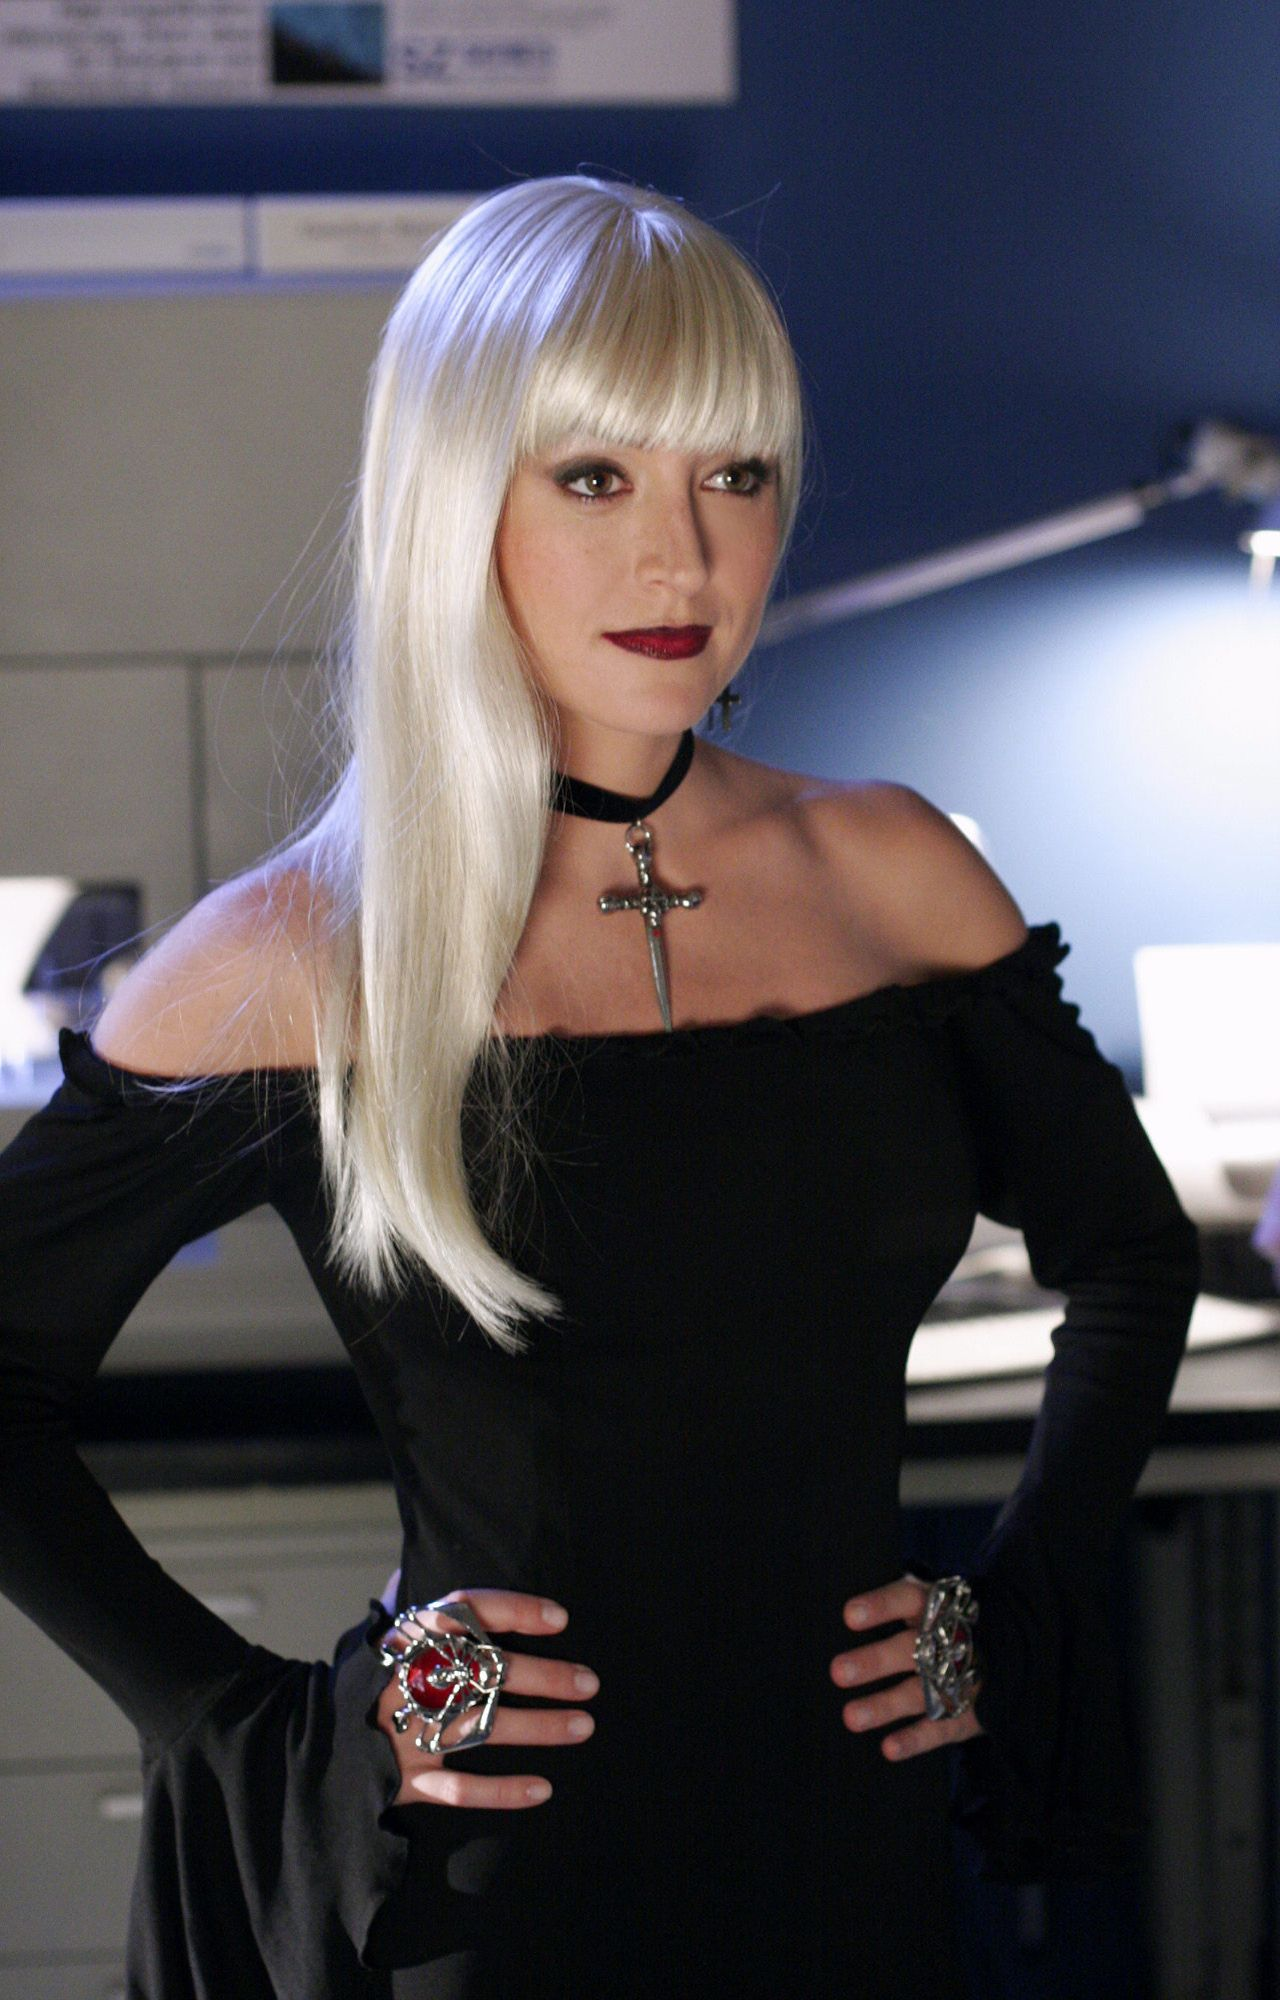 Kate as she appeared to Abby in her lab after her death.